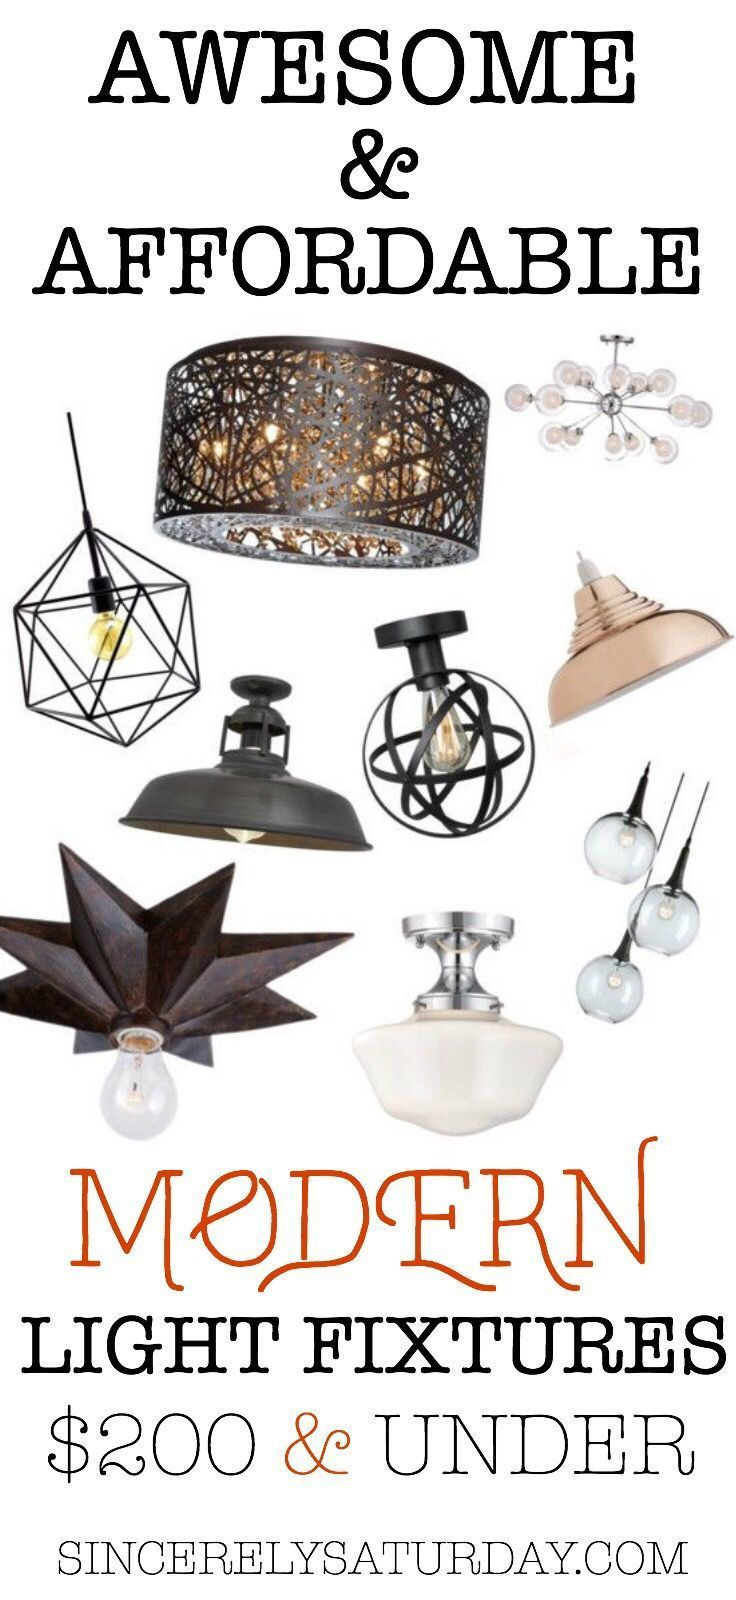 Light Fixtures Modern Awesome And Affordable Cheap Light